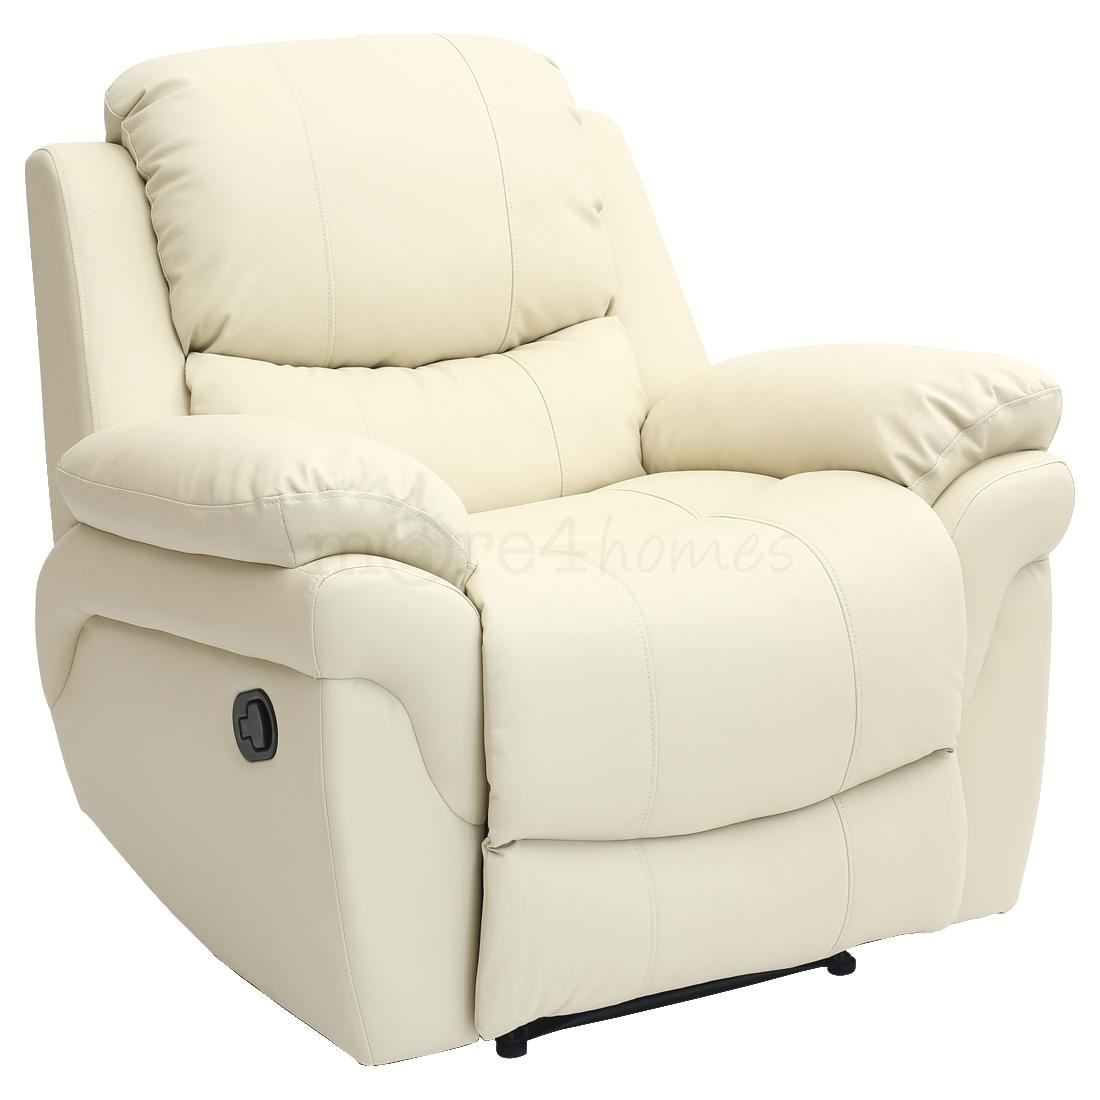 MADISON CREAM REAL LEATHER RECLINER ARMCHAIR SOFA HOME  : 132a67e6 6e9f 4a7c 8cd4 0f6ce308b796 from www.ebay.co.uk size 1100 x 1100 jpeg 54kB